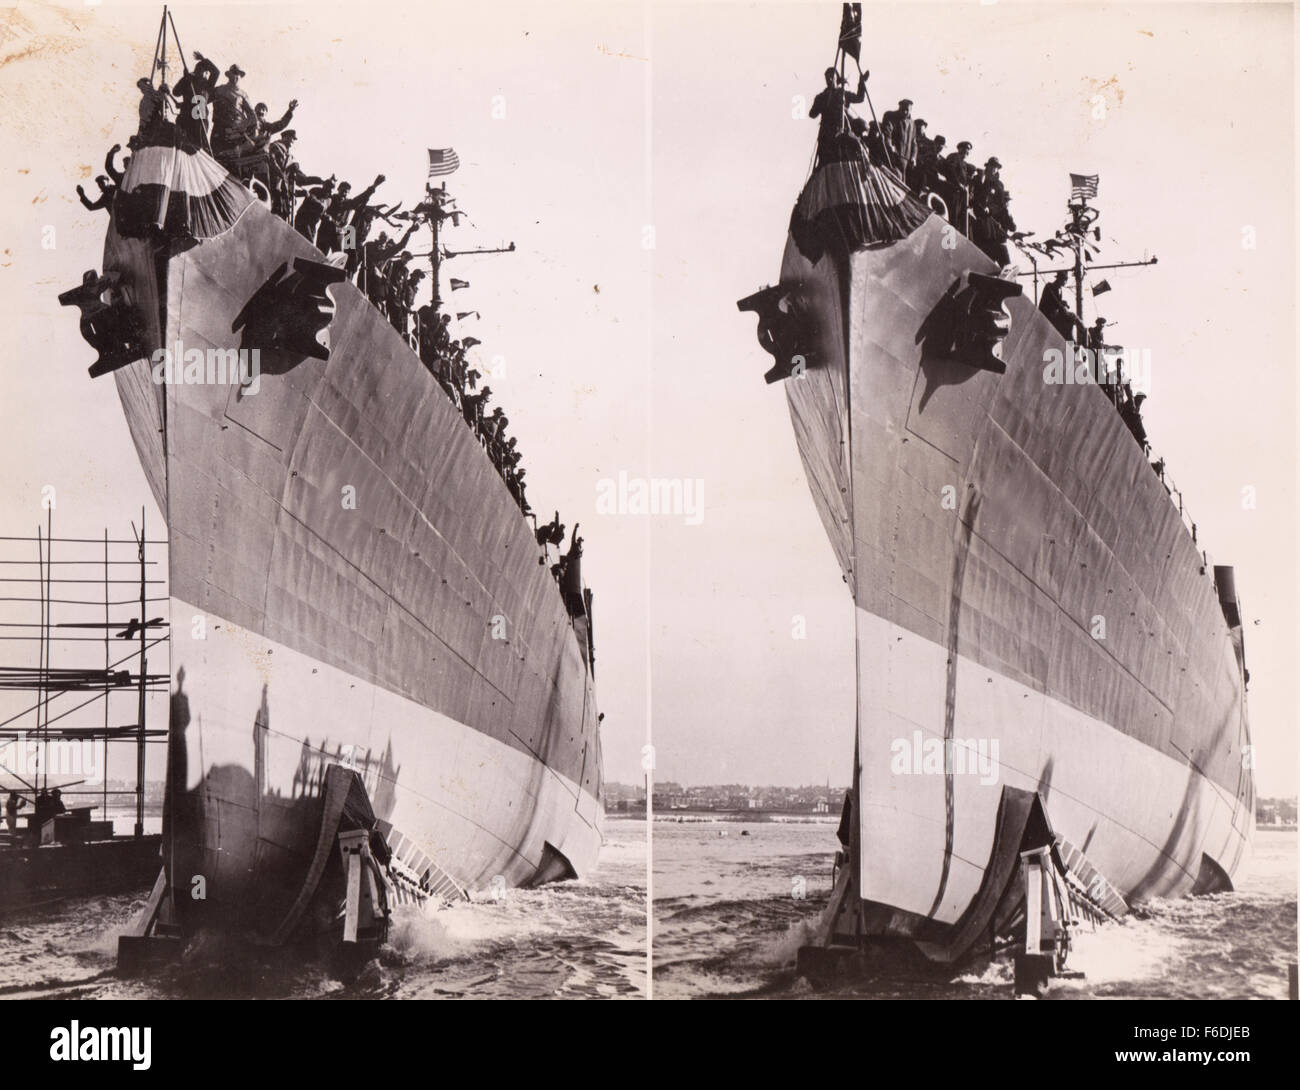 705. Launch of a US Liberty ship 1943. Stock Photo